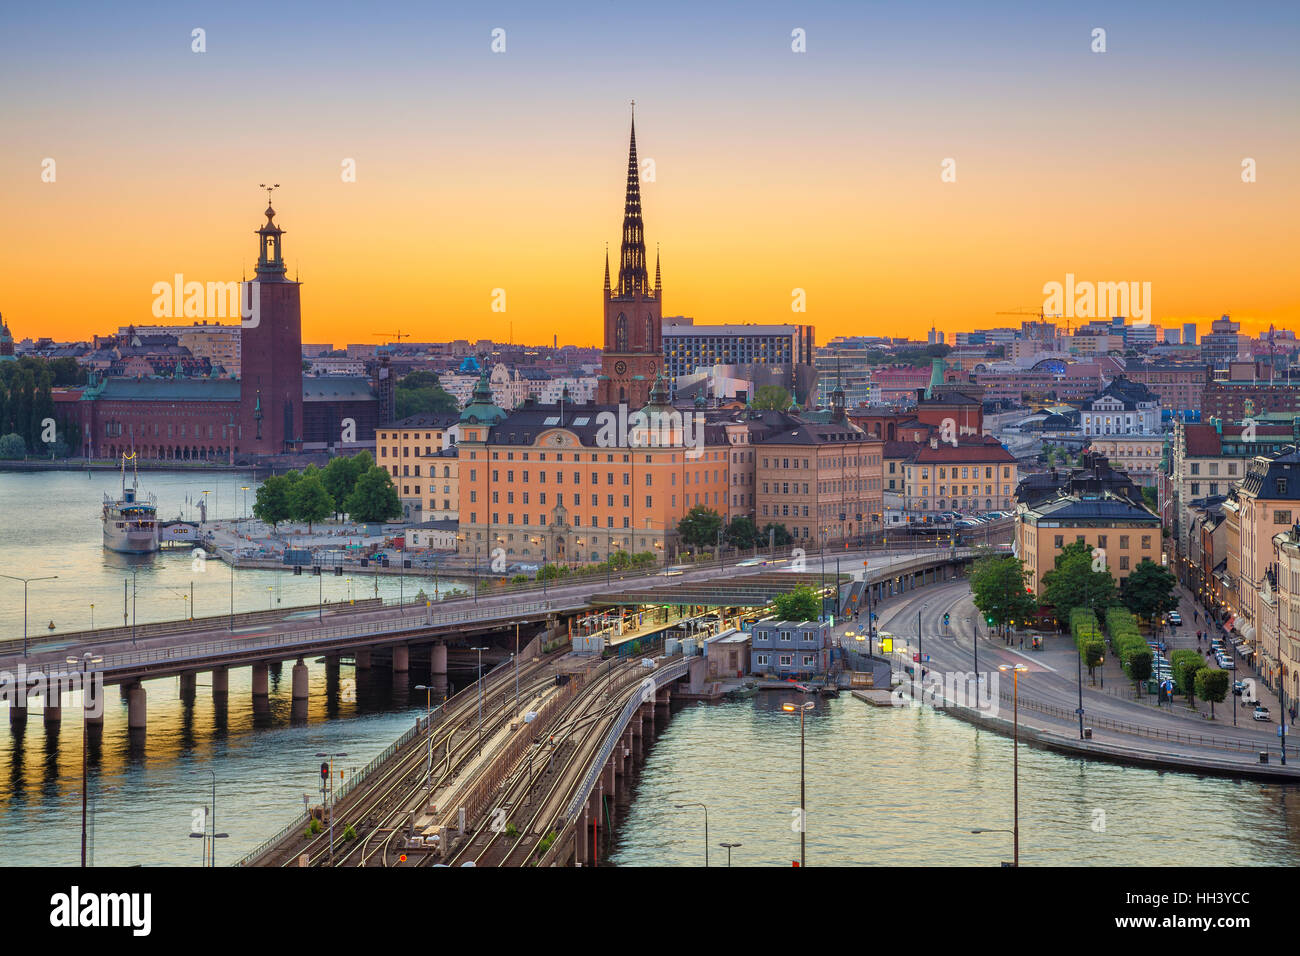 Stockholm. Cityscape image of Stockholm, Sweden during sunset. - Stock Image